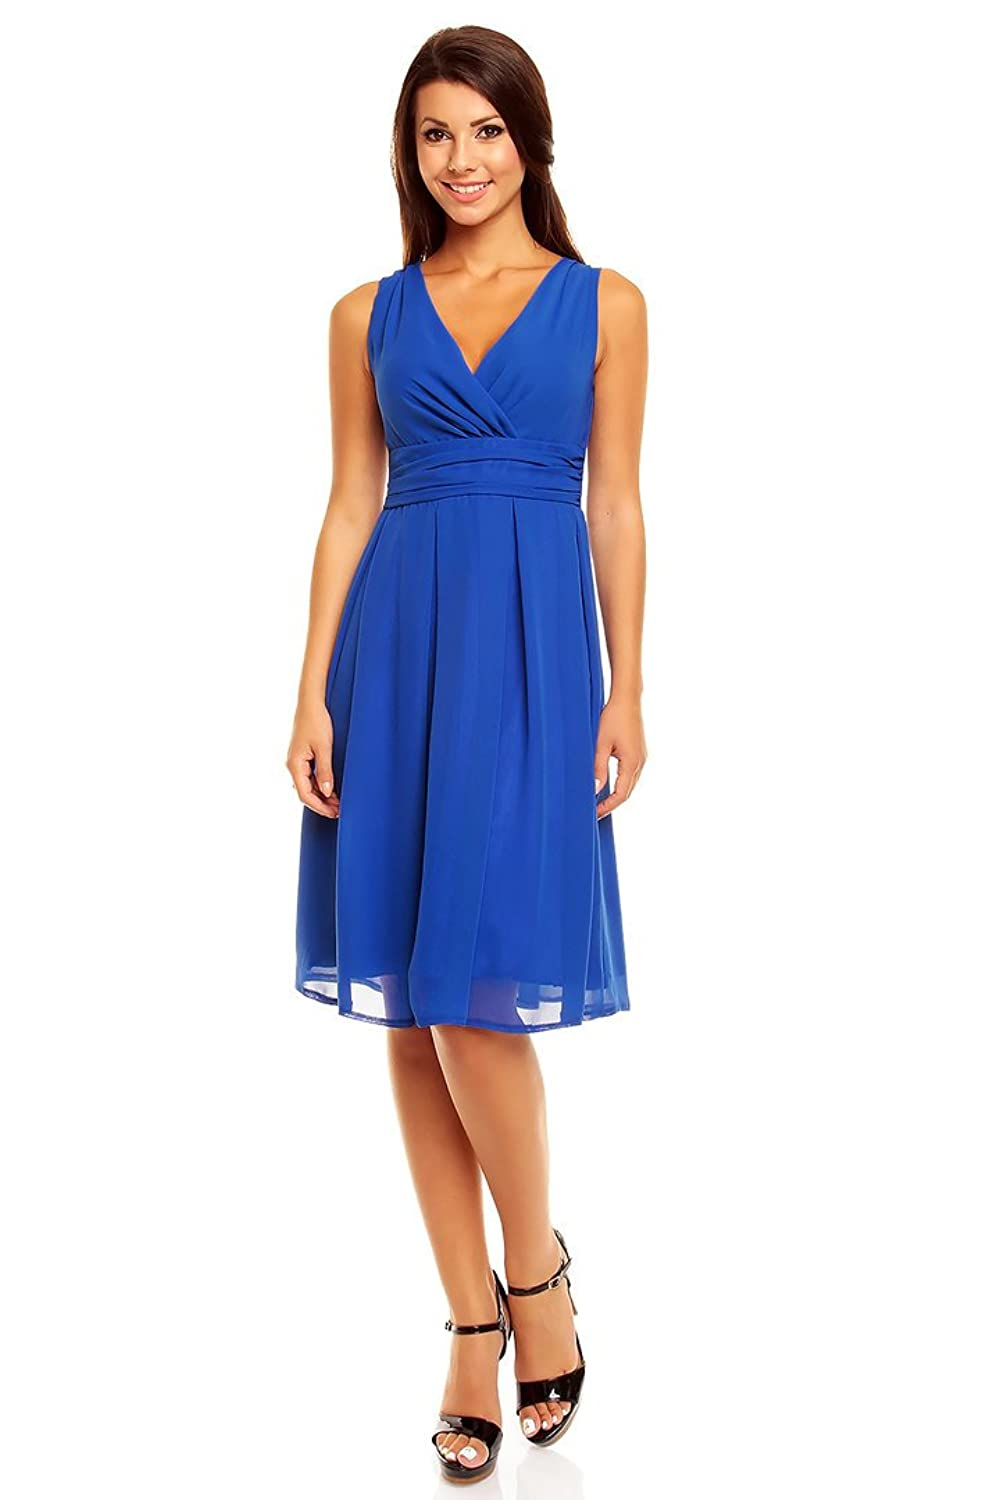 Victoriav Women's Cocktail Plain Dress blue blue